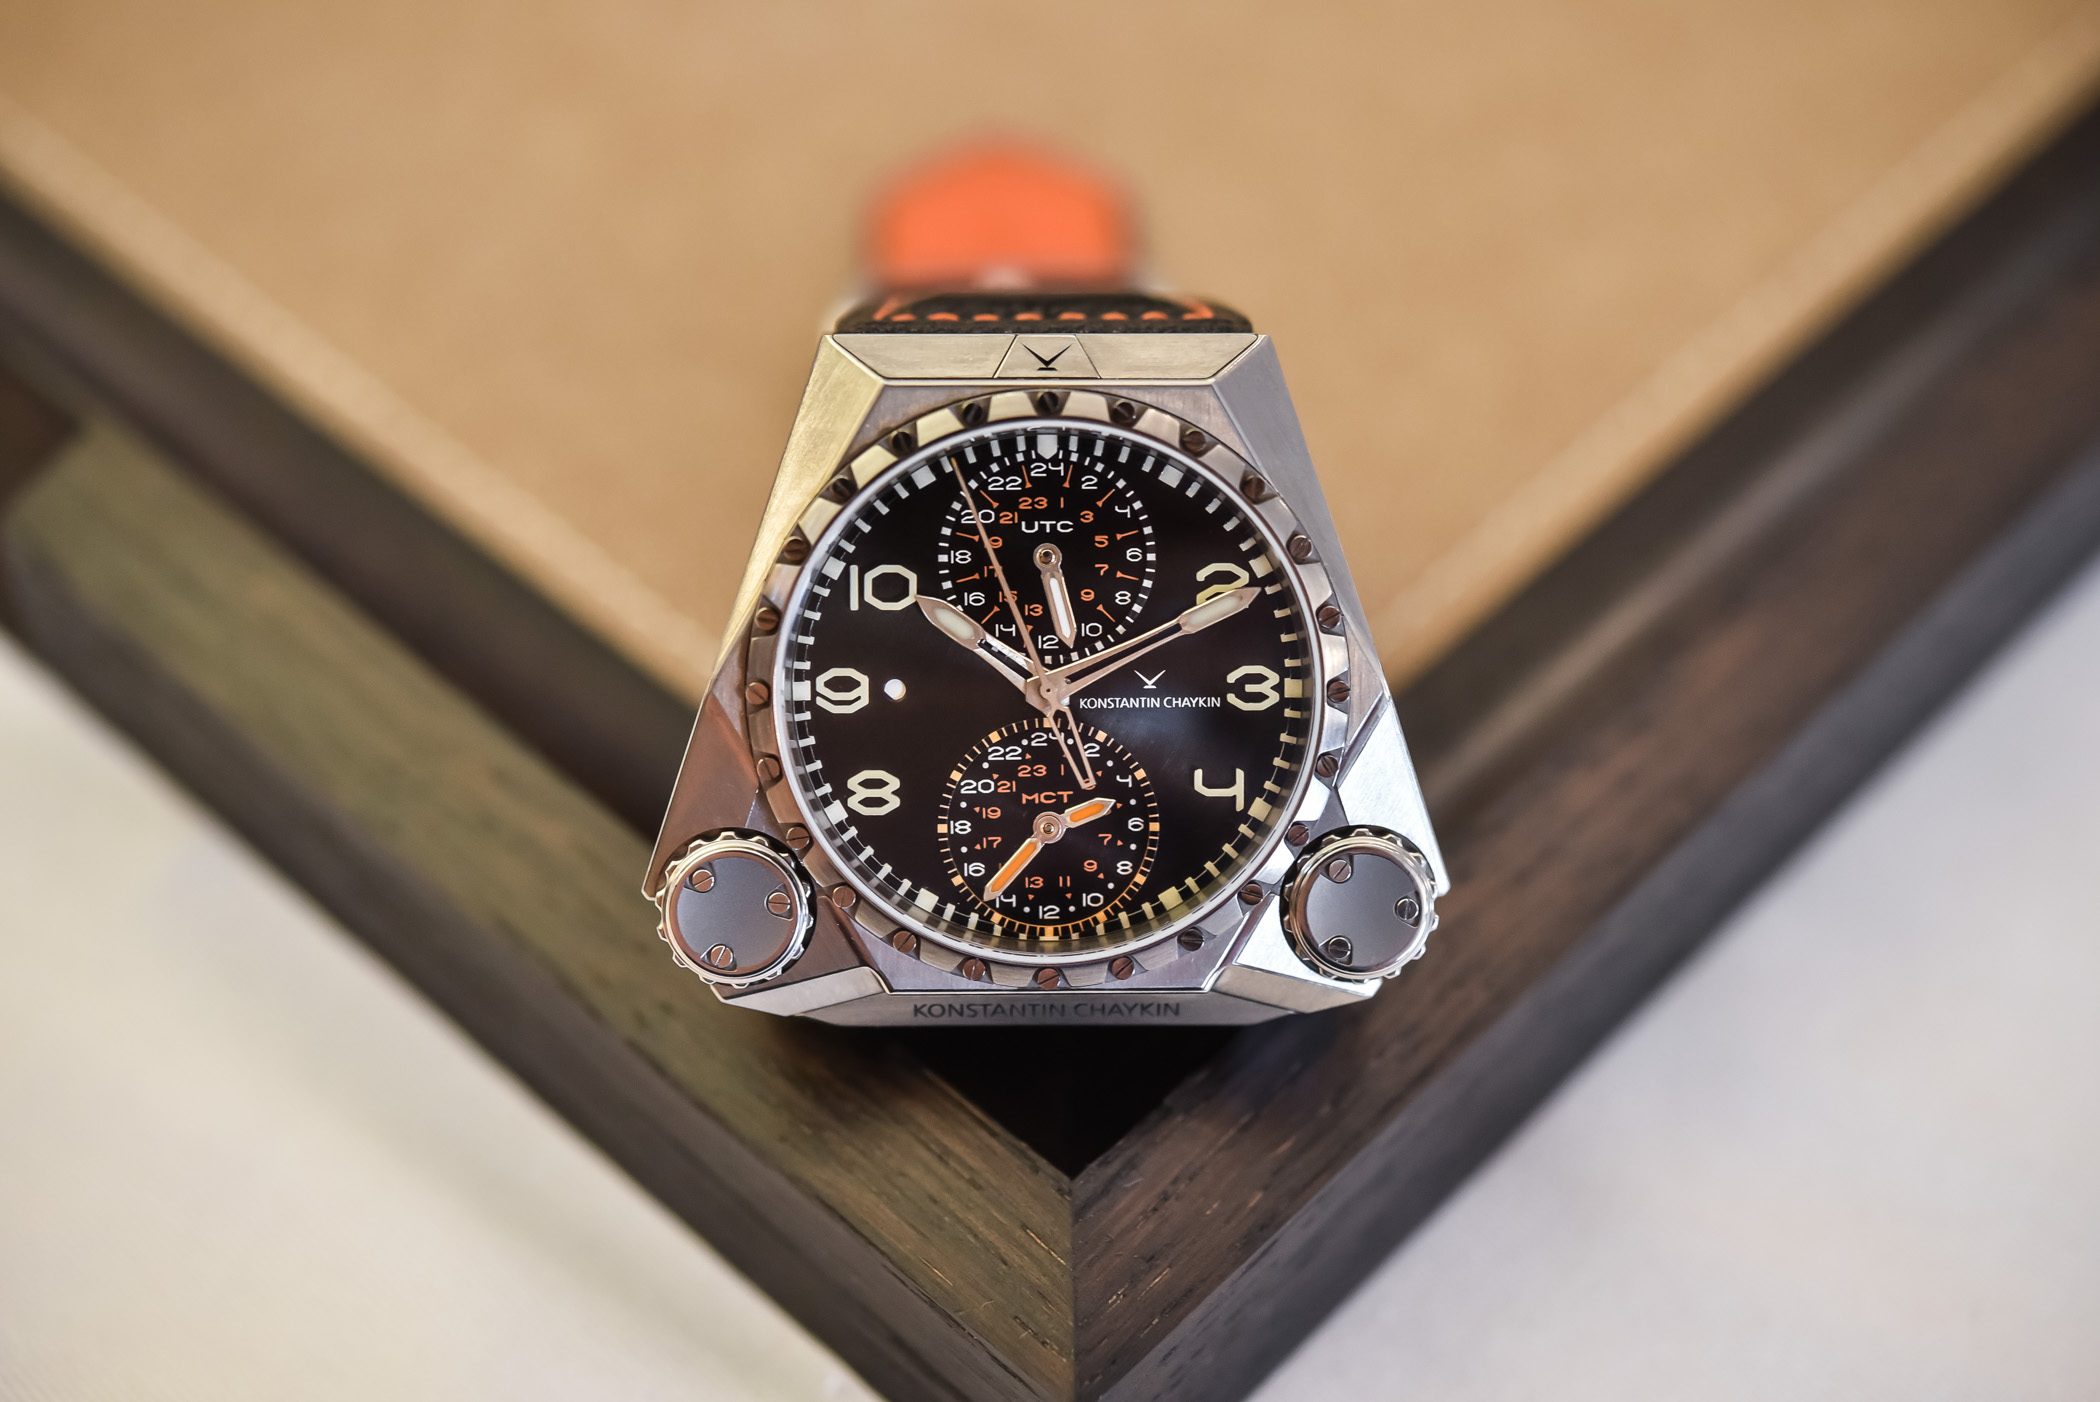 Review Konstantin Chaykin Mars Conqueror MK3, The Watch Made For The Exploration of Mars